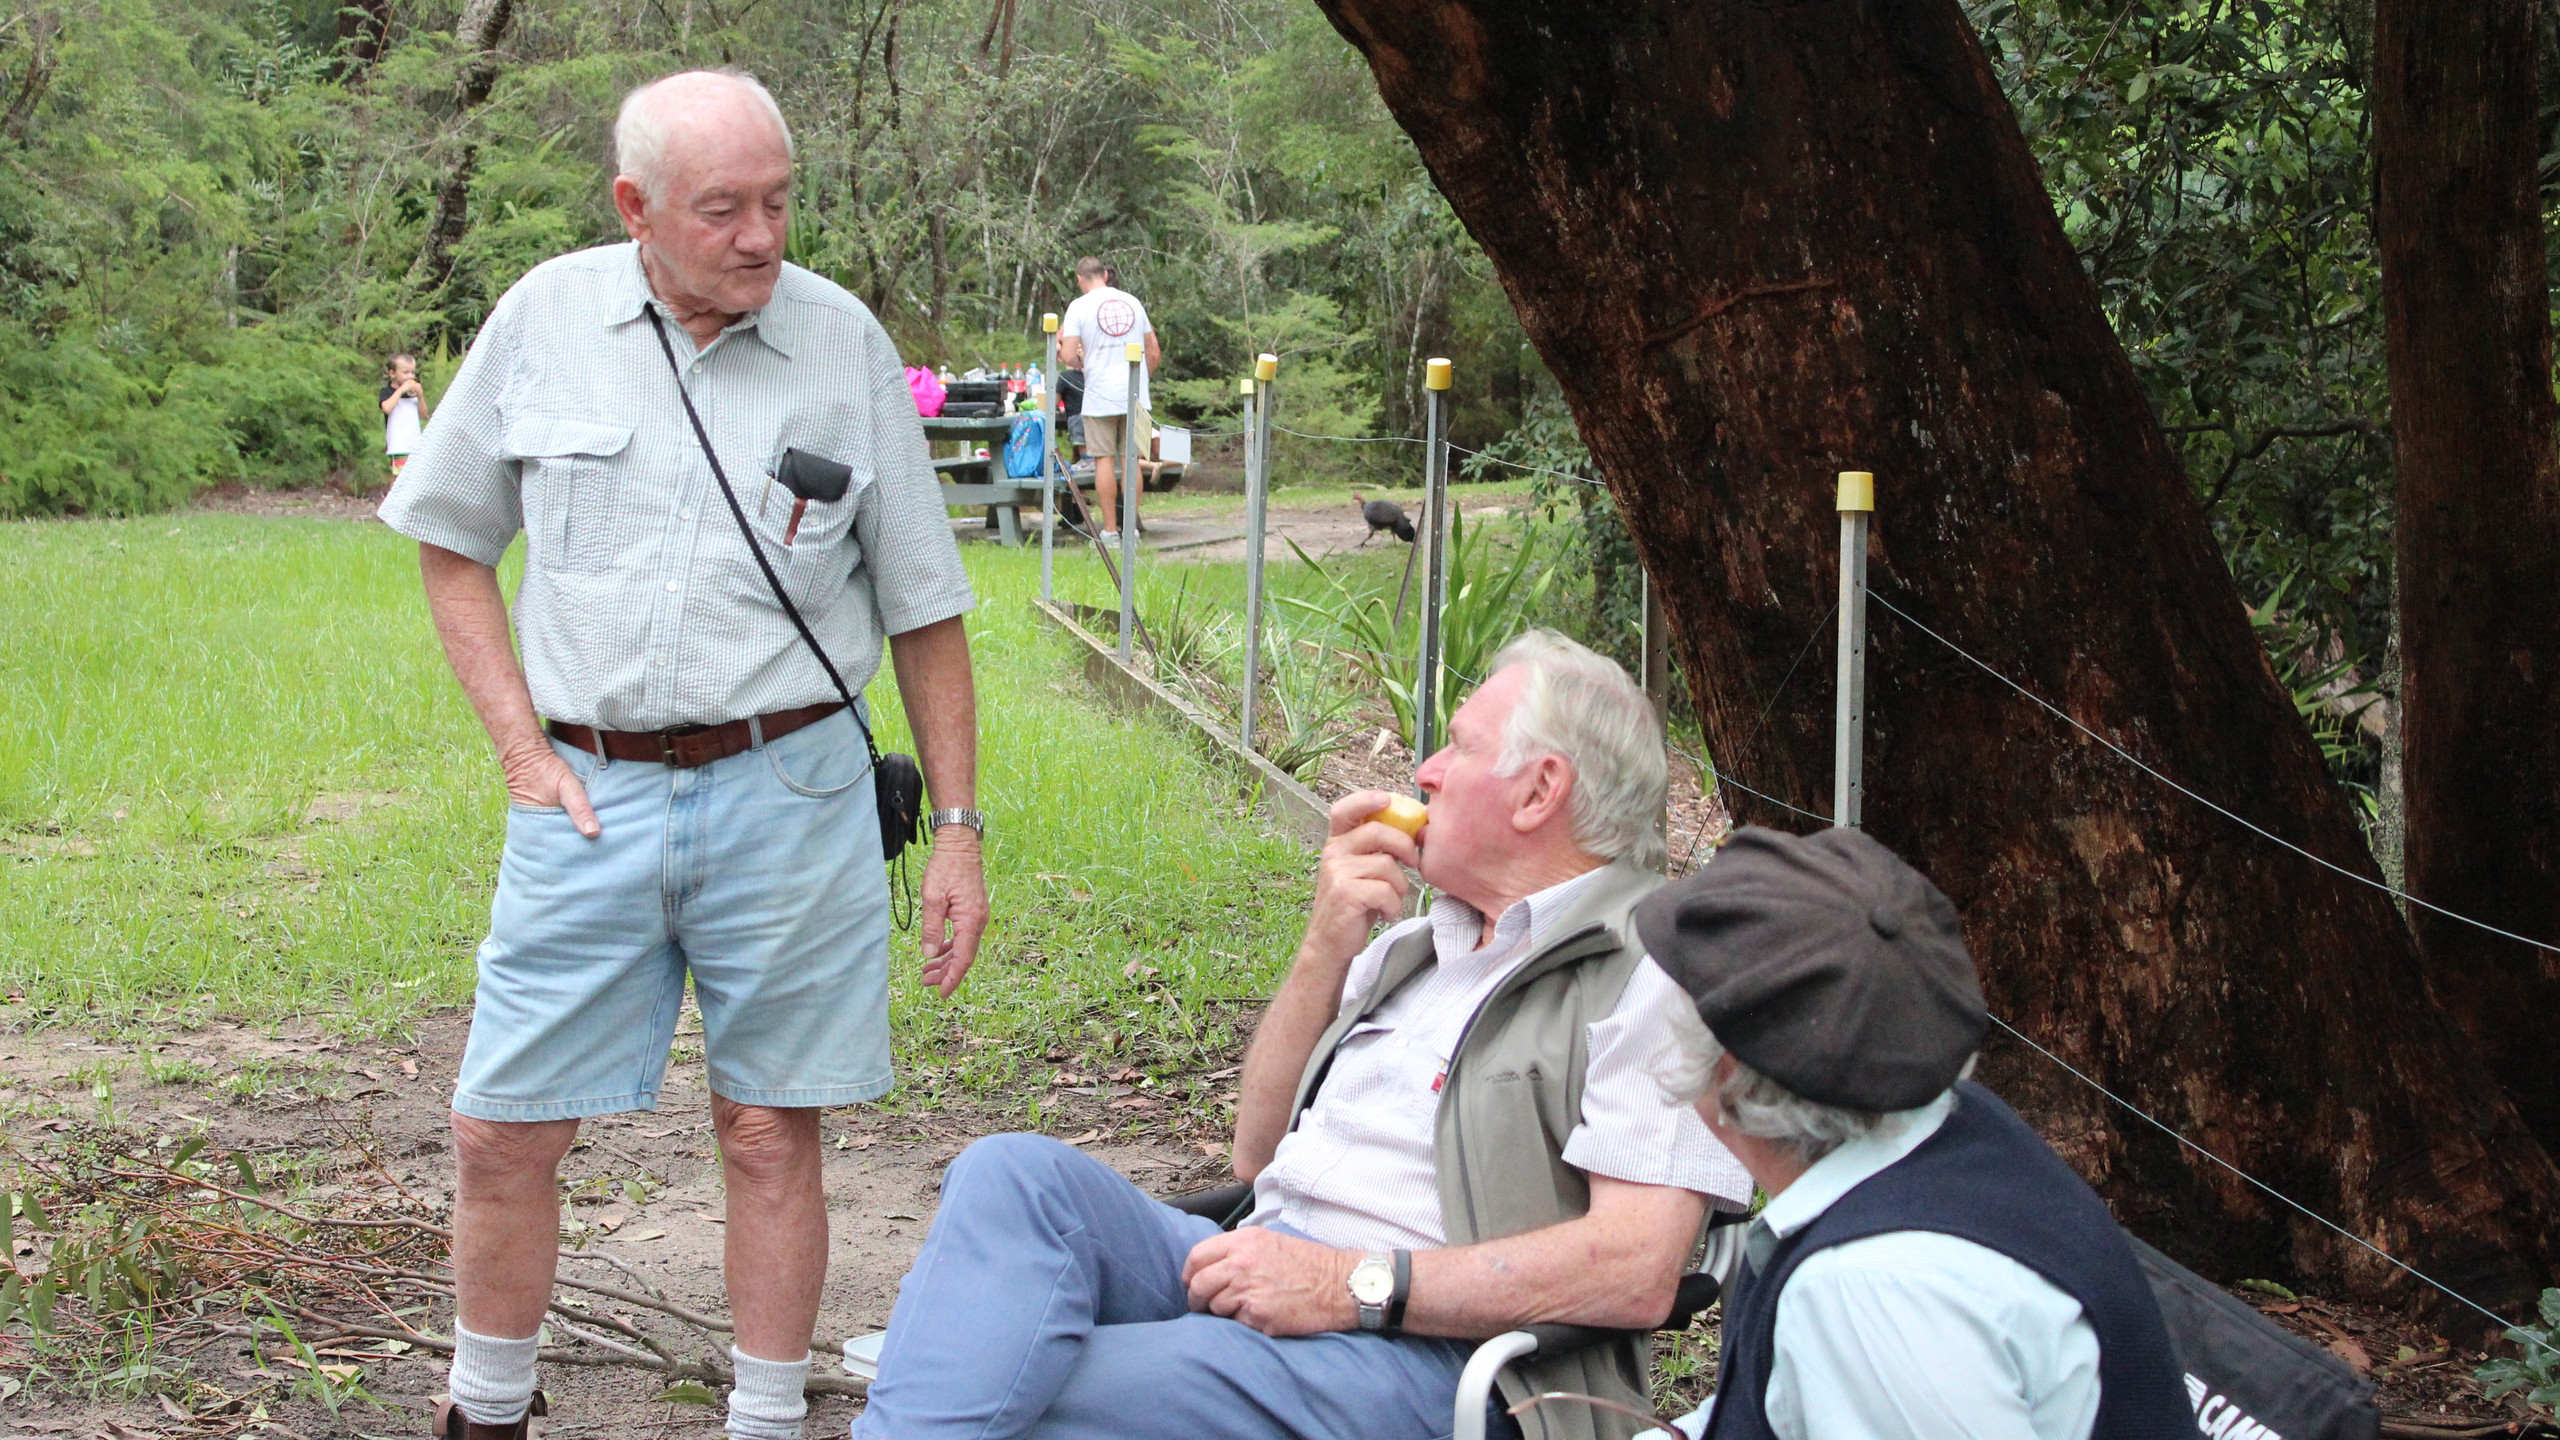 Some of our people enjoying a relaxing time at the picnic area